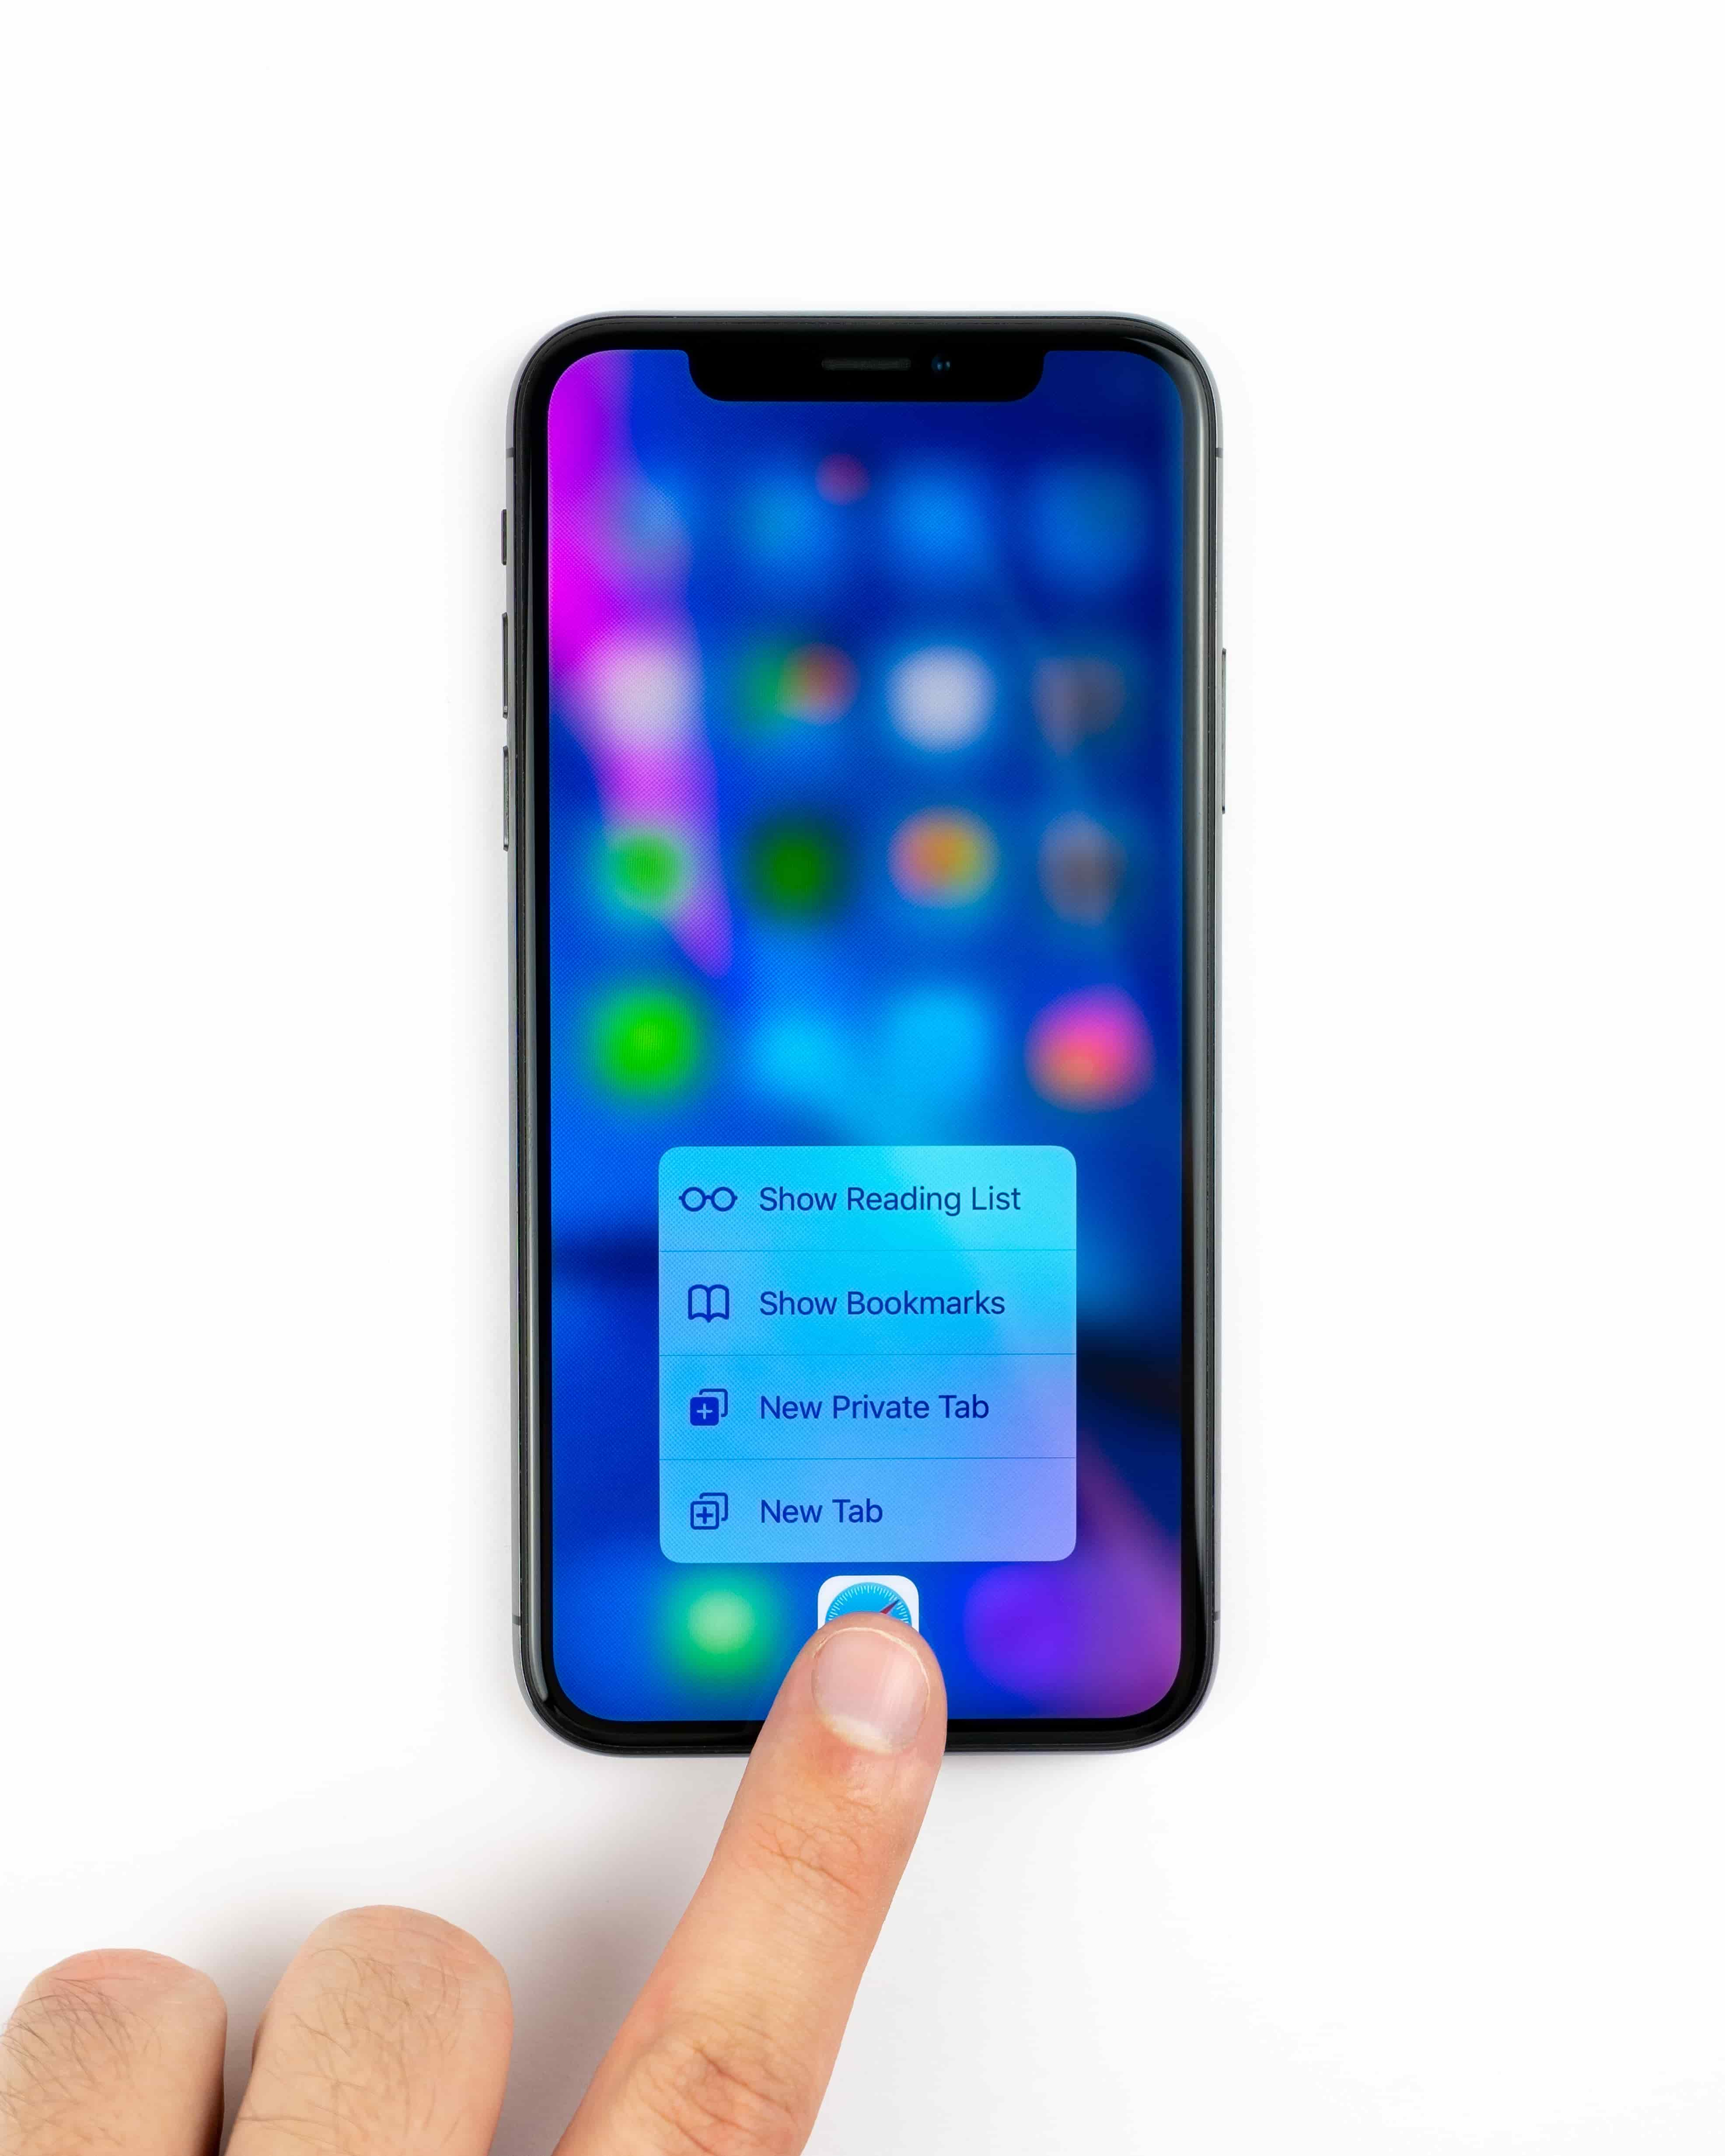 Apple To Replace 3D Touch With IPhone XR's Haptic Touch To